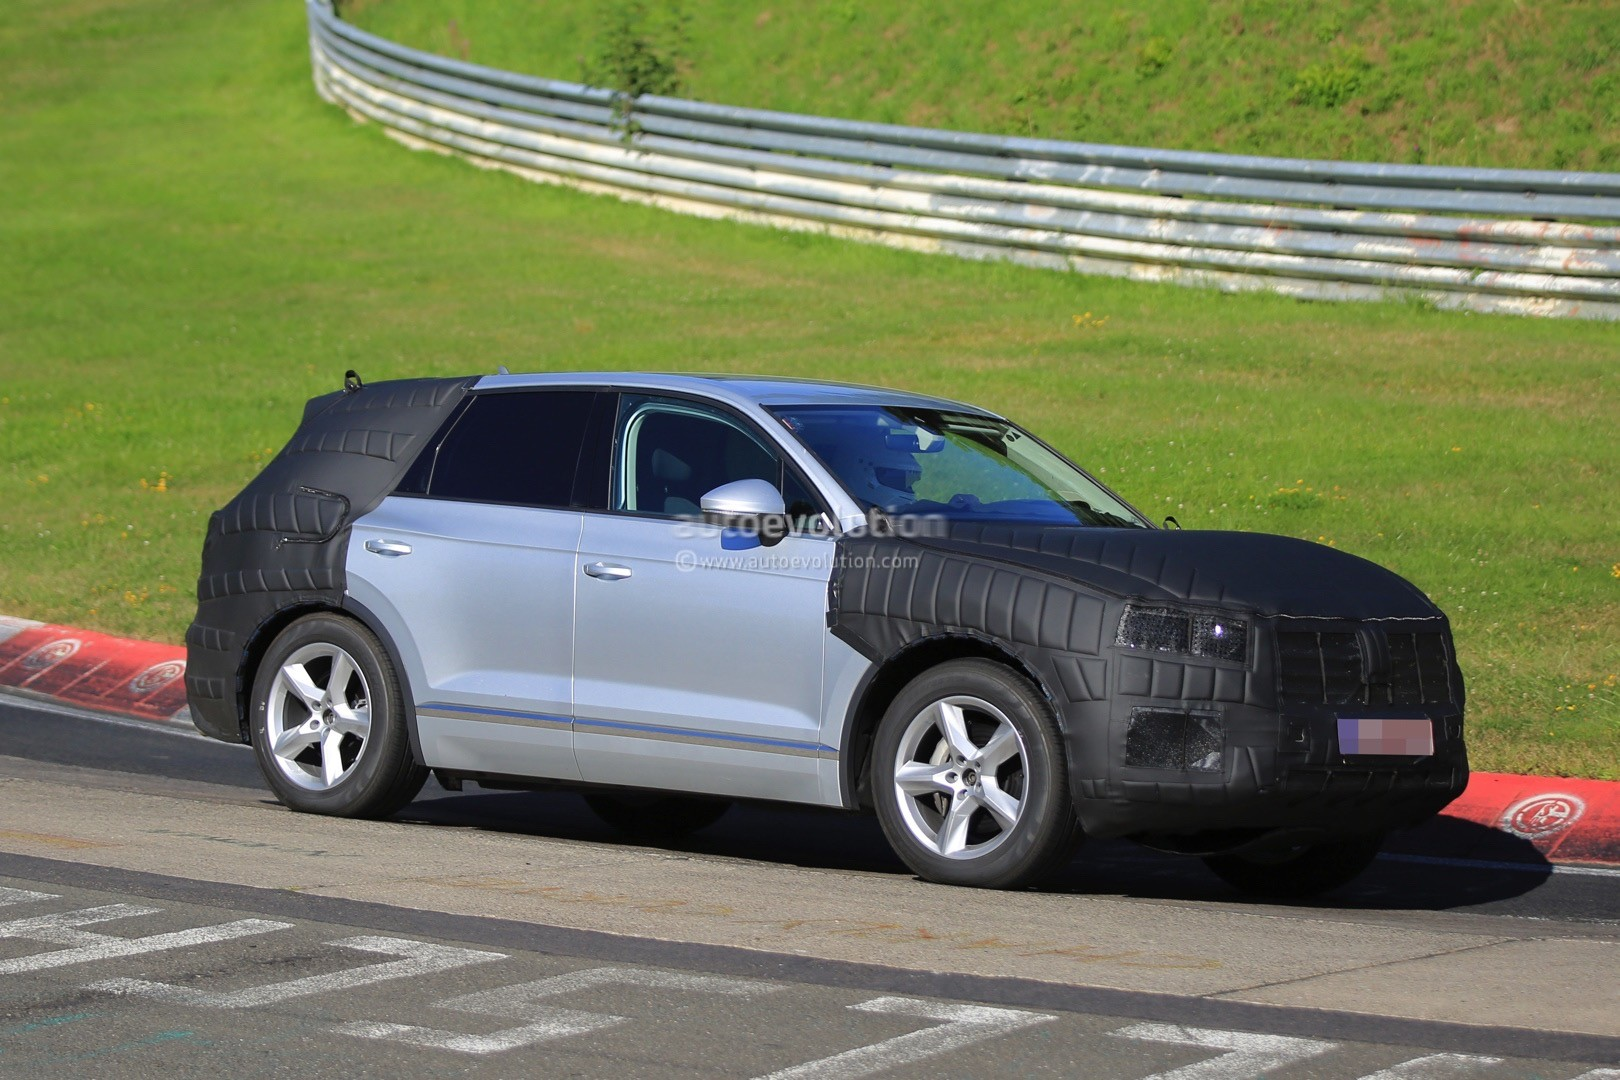 2018 Volkswagen Touareg Spied in Production-Ready Form - autoevolution